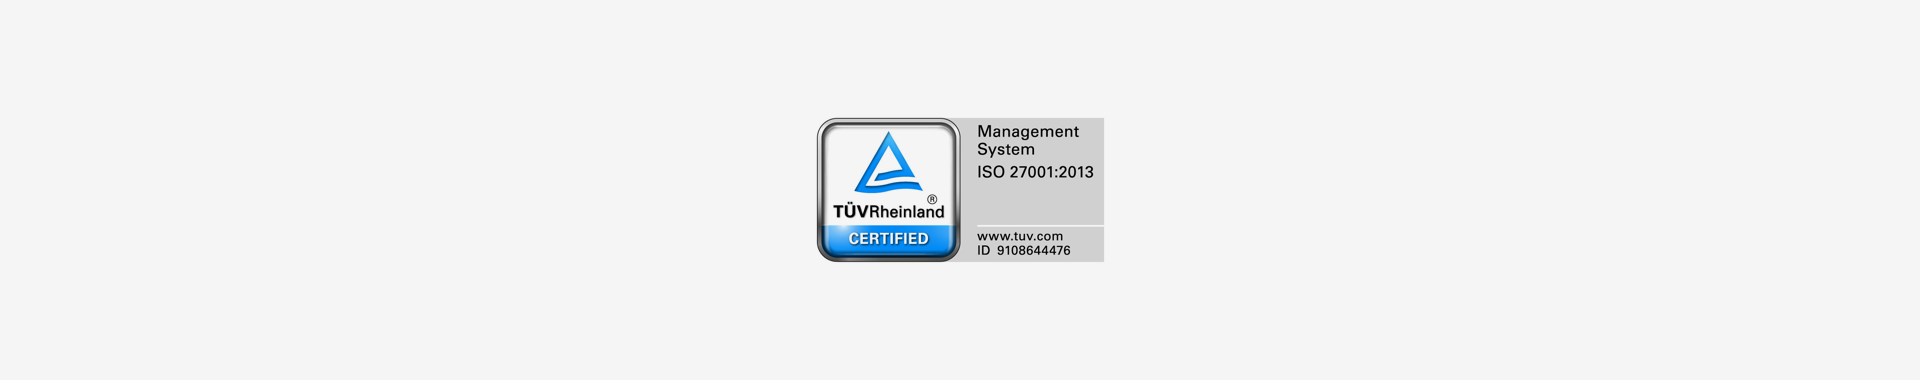 Tresorit receives ISO 27001 certification